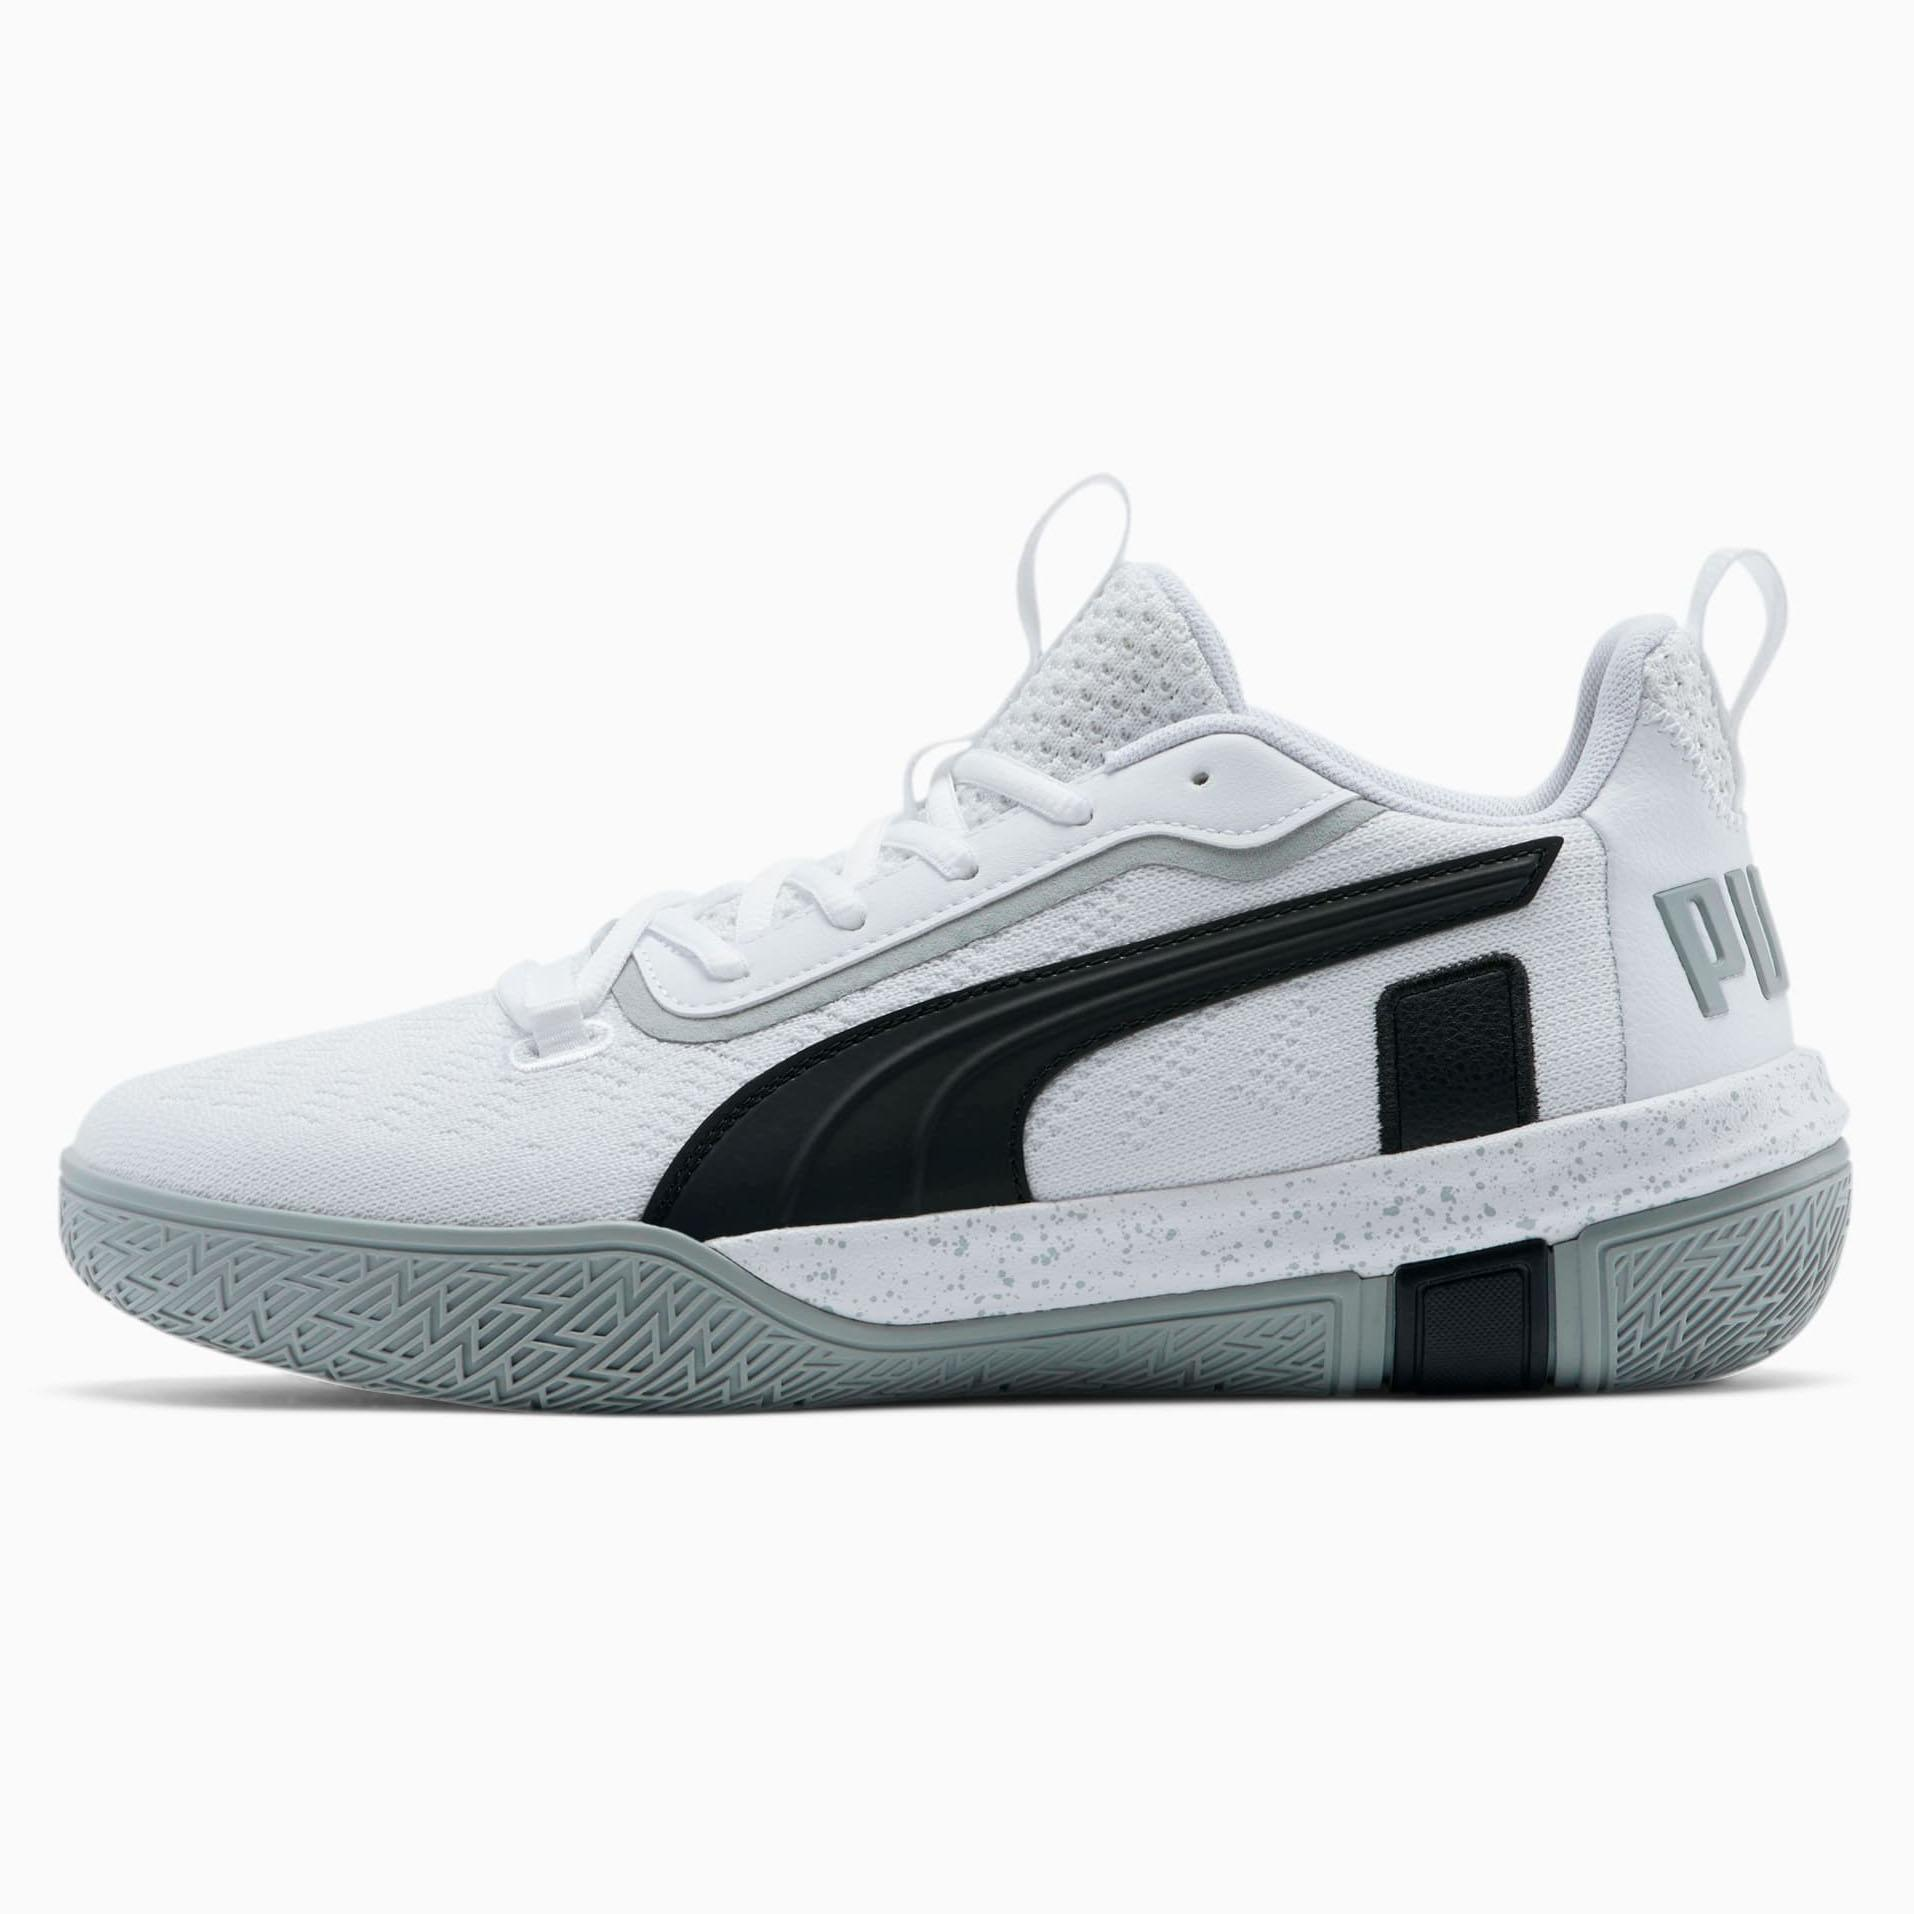 PUMA 彪马 Legacy Low Men's Basketball Shoes 男子篮球鞋